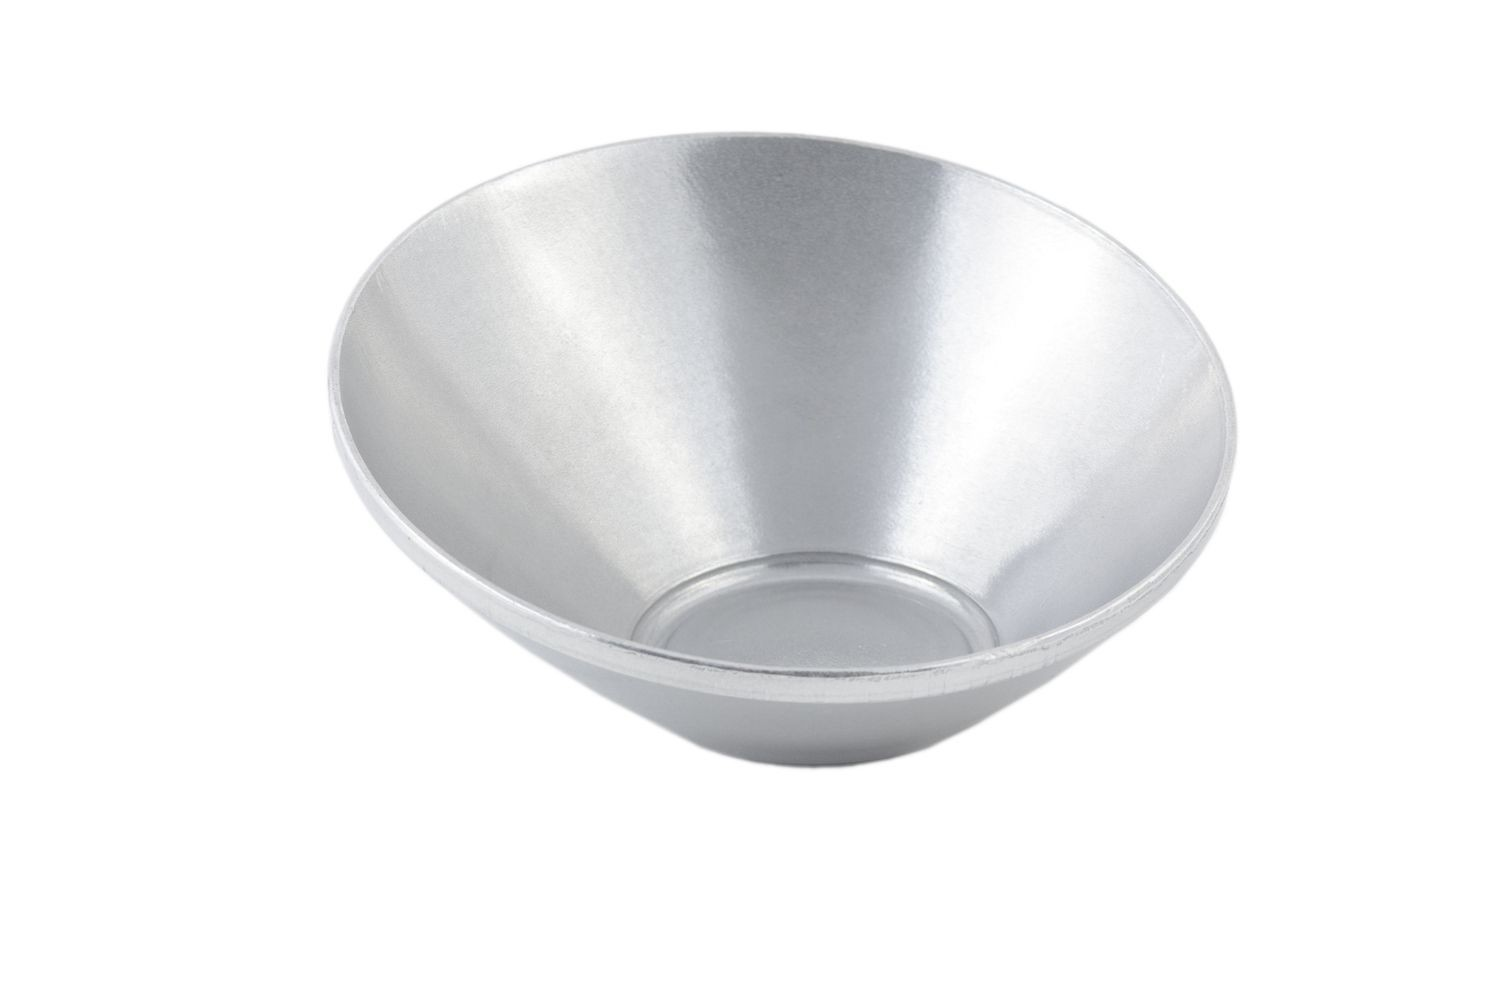 Bon Chef 2712P Slant Bowl, Pewter Glo 2 1/2 Qt.